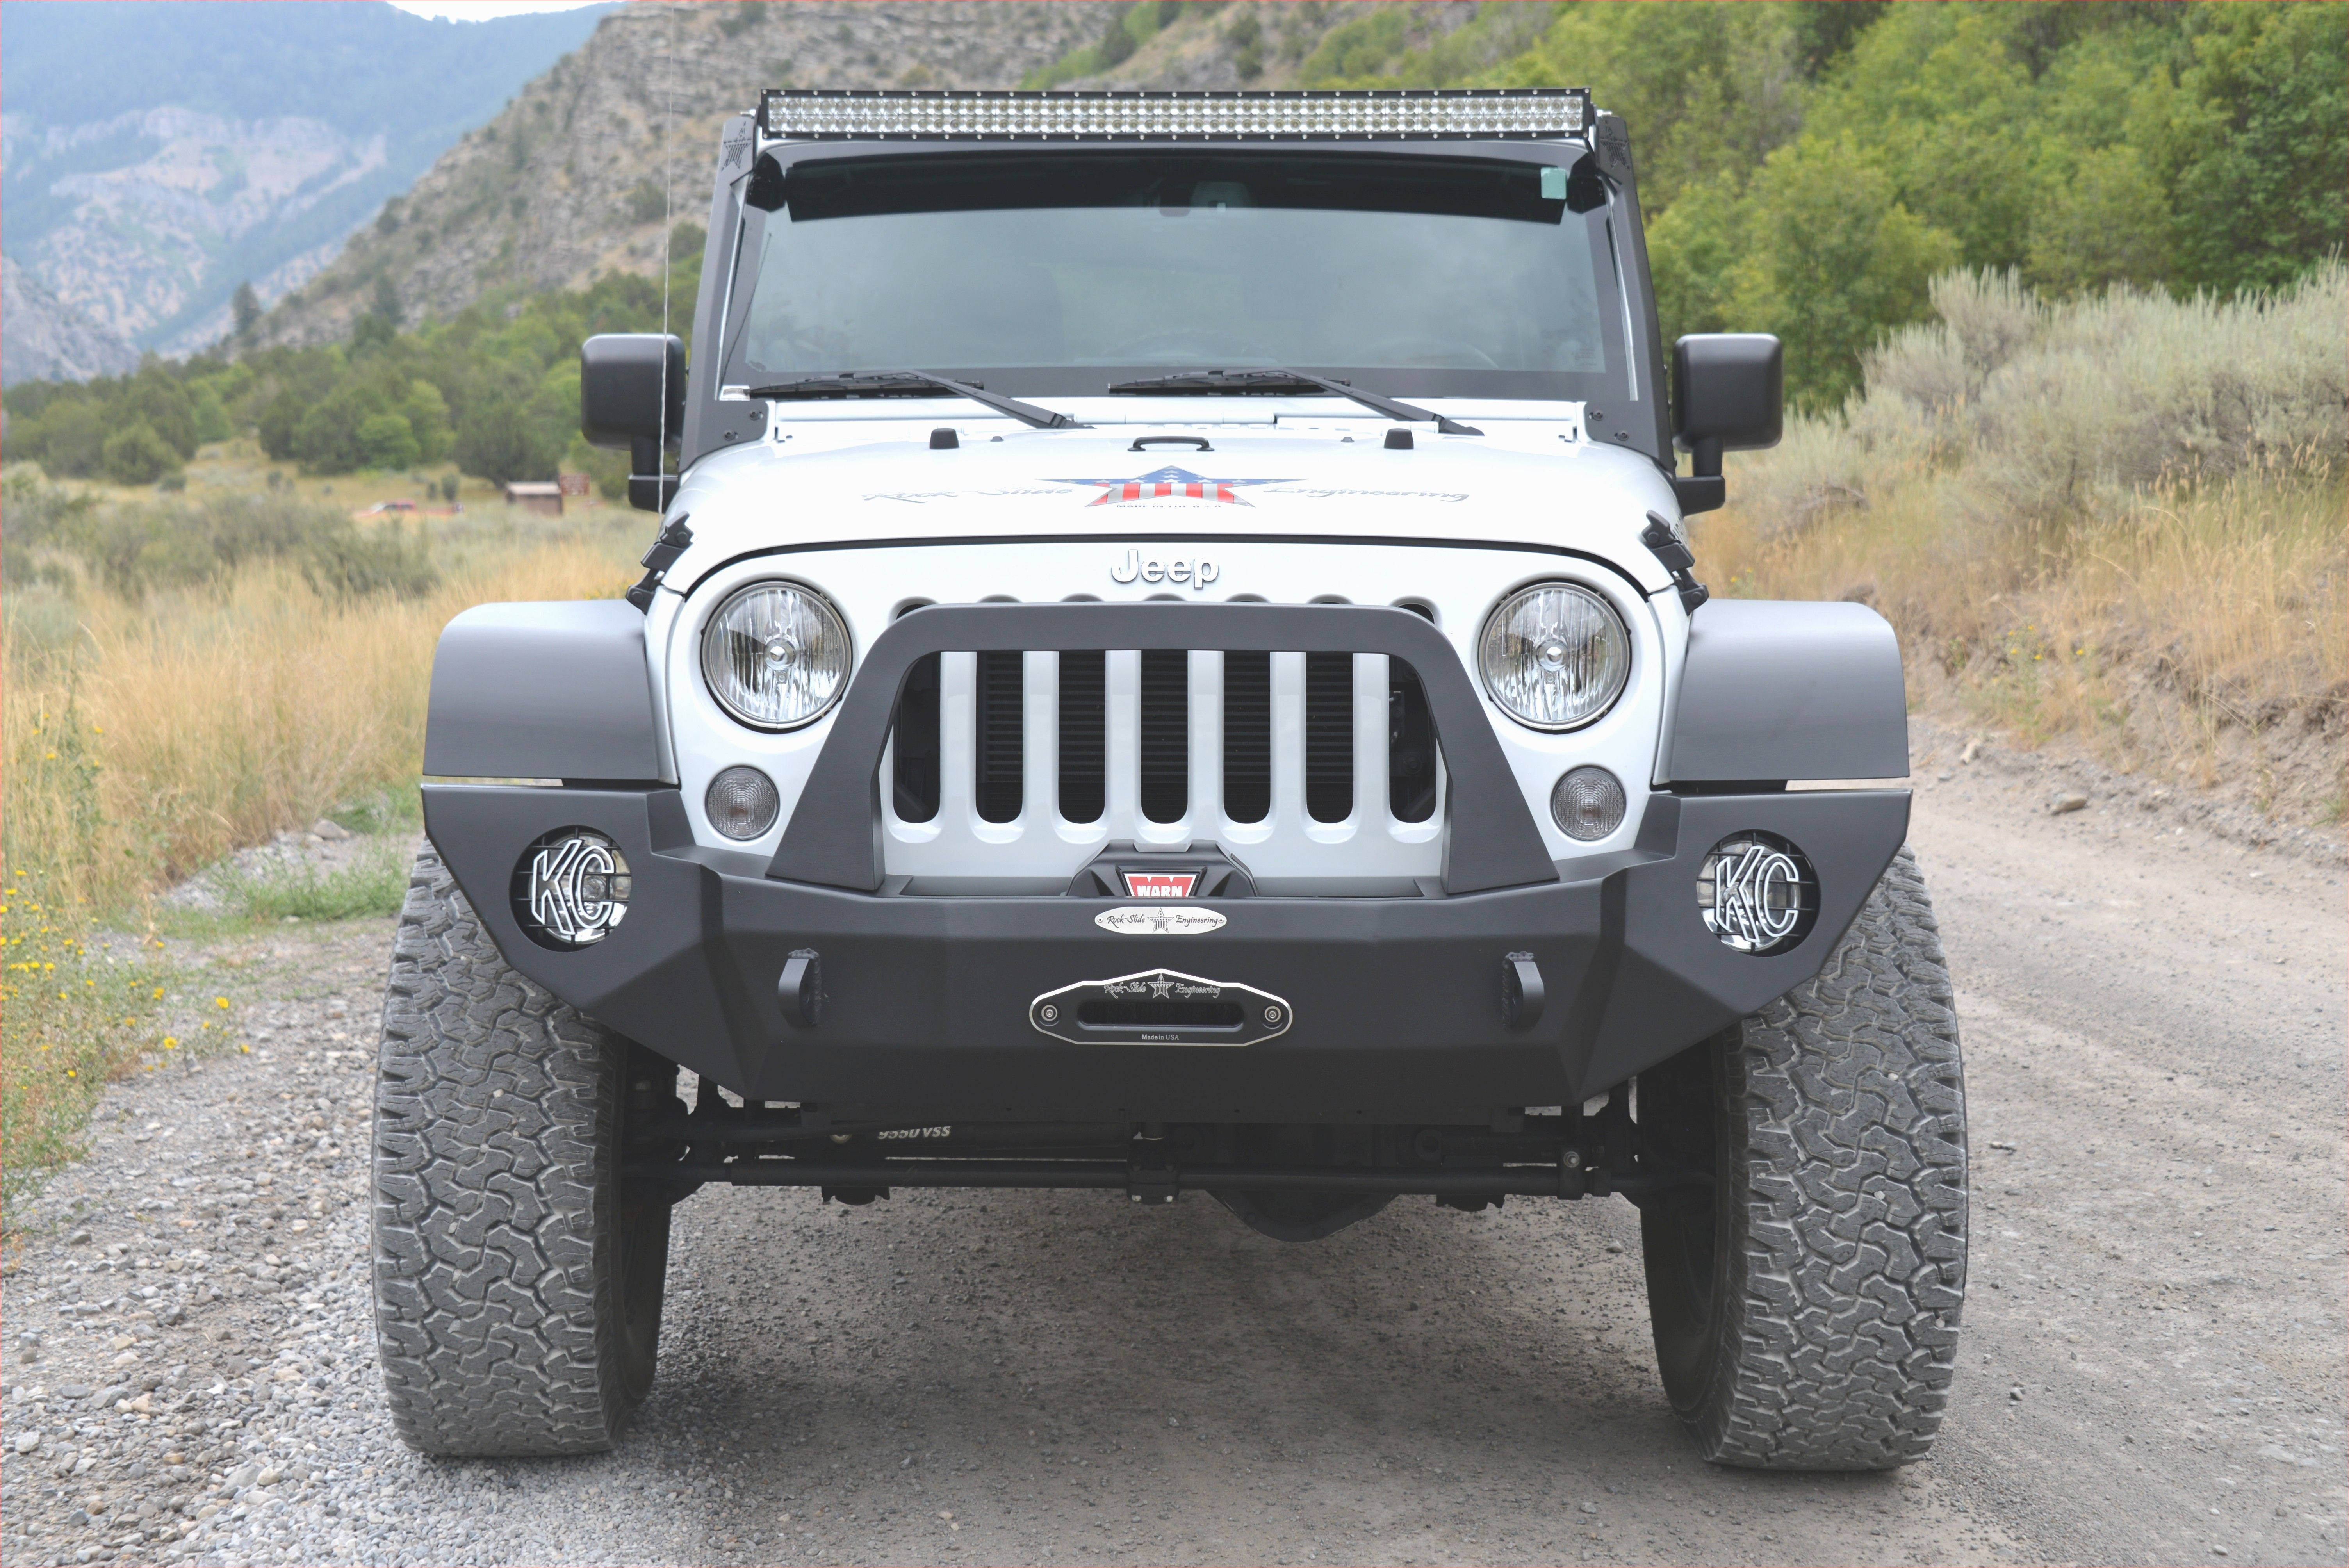 Jeep Wrangler Accessories   Inspirational Jeep Wrangler Accessories, 2015 Jeep  Wrangler Black With Custom Accessories